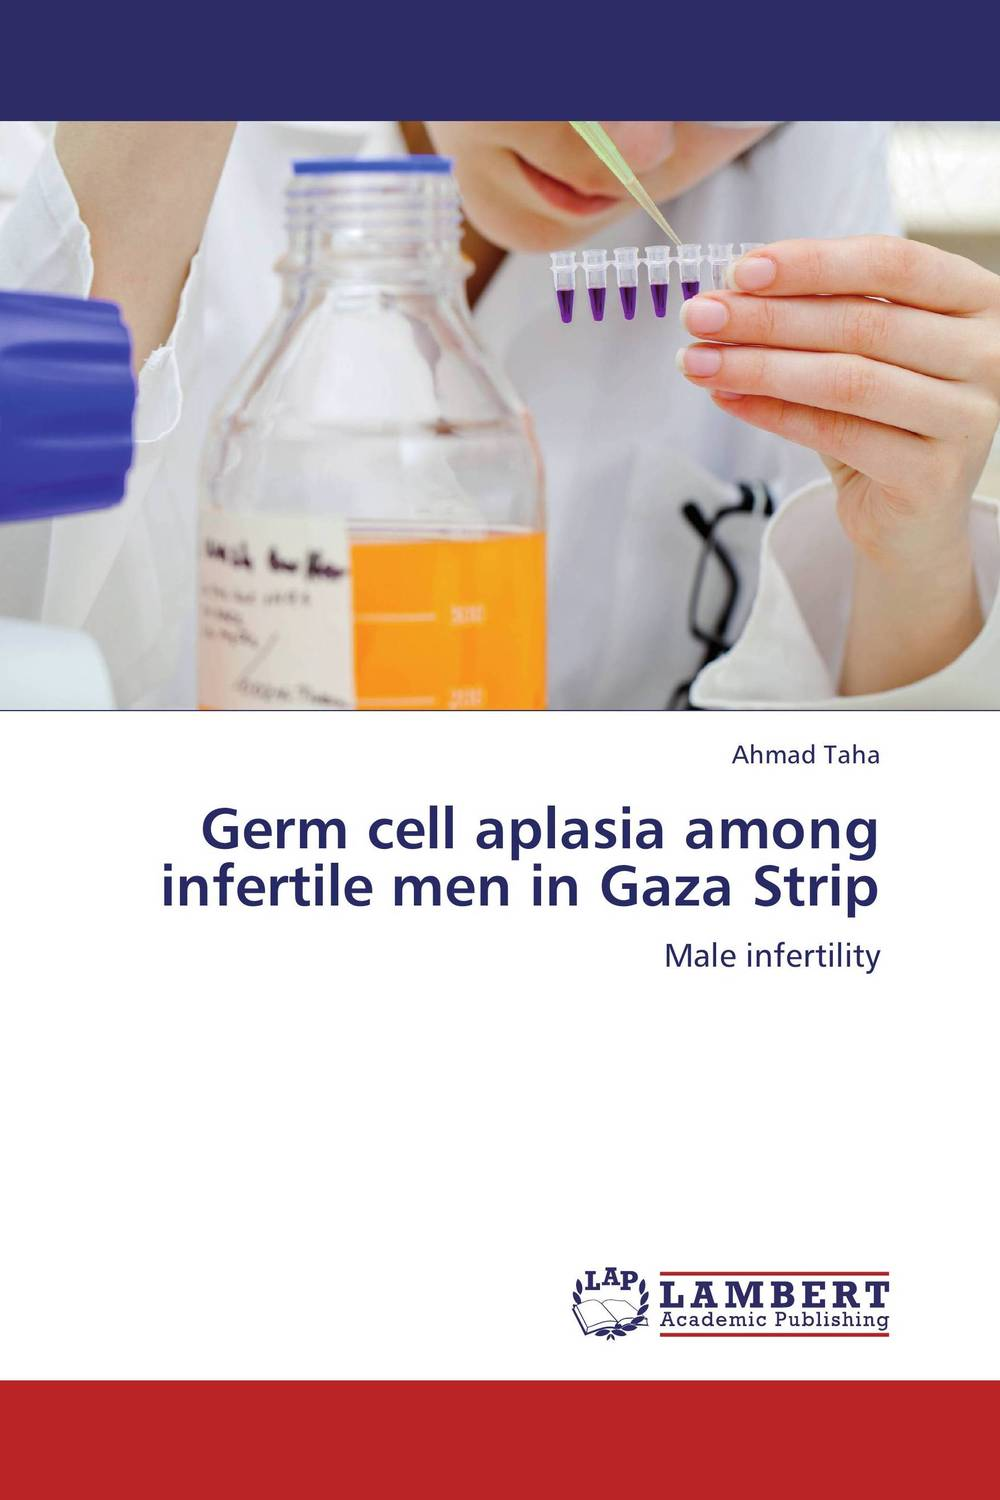 Germ cell aplasia among infertile men in Gaza Strip eia a tool to support sustainable development in gaza strip palestine